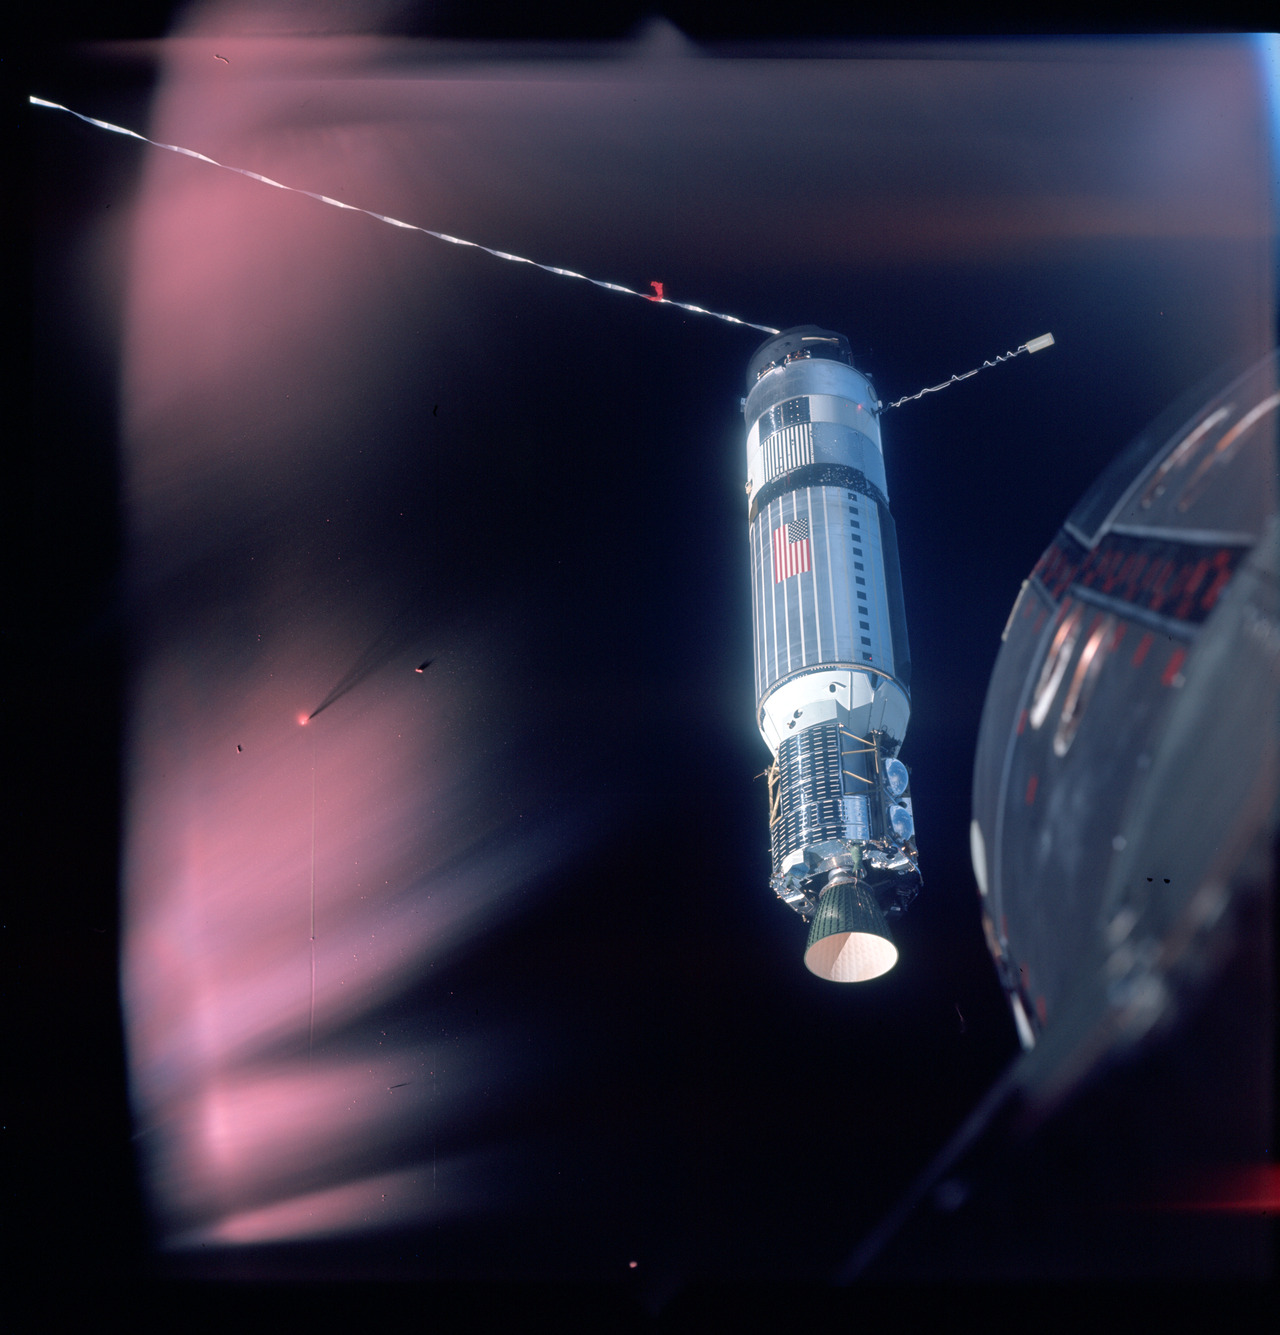 NASA's Project Gemini was designed to test technologies and techniques for the Apollo Program. The two-man Gemini spacecraft was larger and more sophisticated than its Mercury predecessor. The spacecraft was designed by a team of NASA engineers led by Jim Chamberlin, and built by McDonnell Aircraft, in St Louis. There were two uncrewed test flights (1964, 1965) and 10 crewed (March 23, 1965 until November 11–15, 1966) all launched on a Titan II missile. The Gemini flights helped NASA learn to work and live in space, paving the way for the successful Apollo human landings on the Moon.